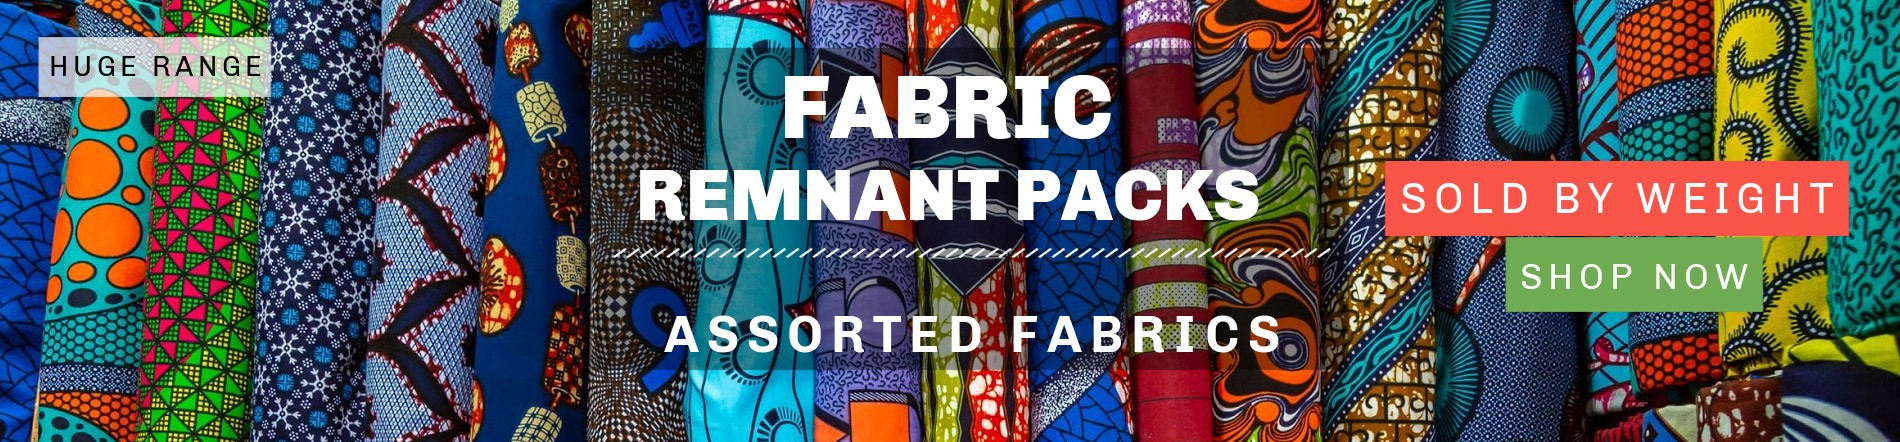 Fabric Remnant Packs